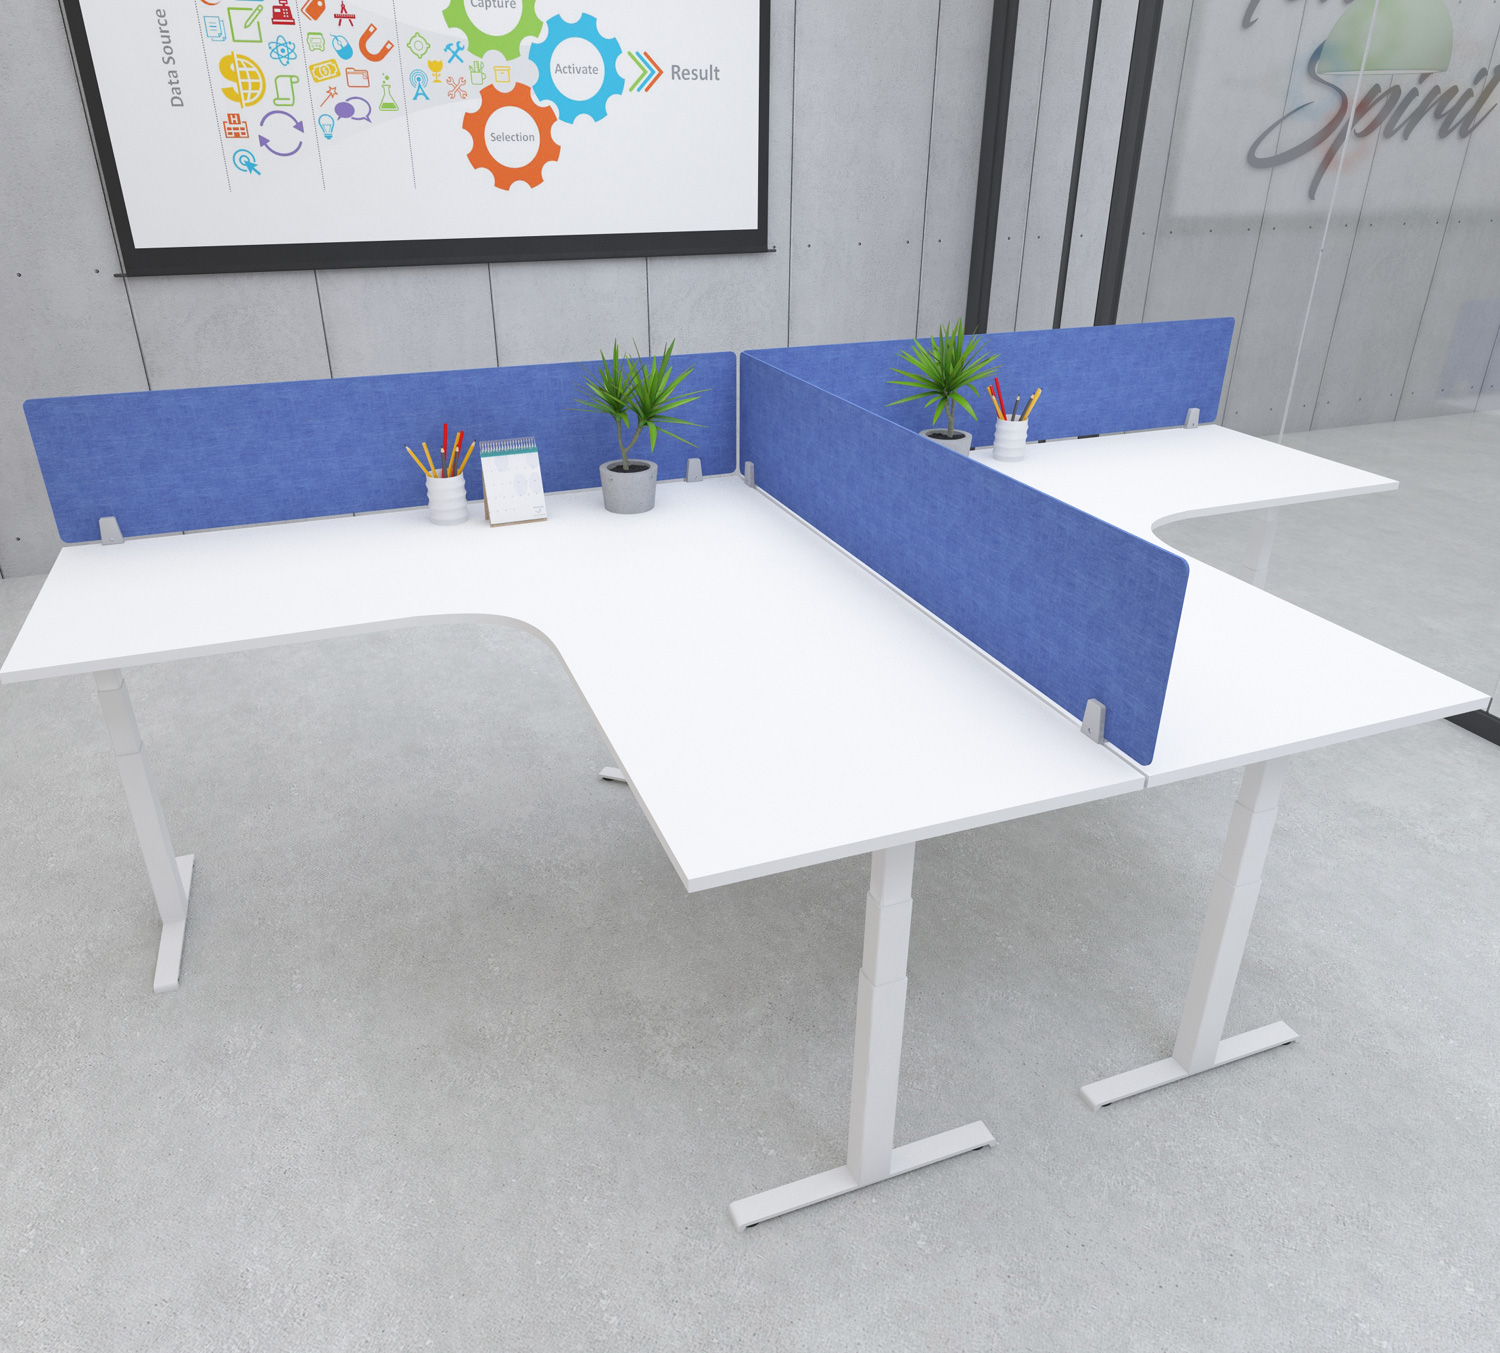 s164 desk top privacy screen modesty panel blue